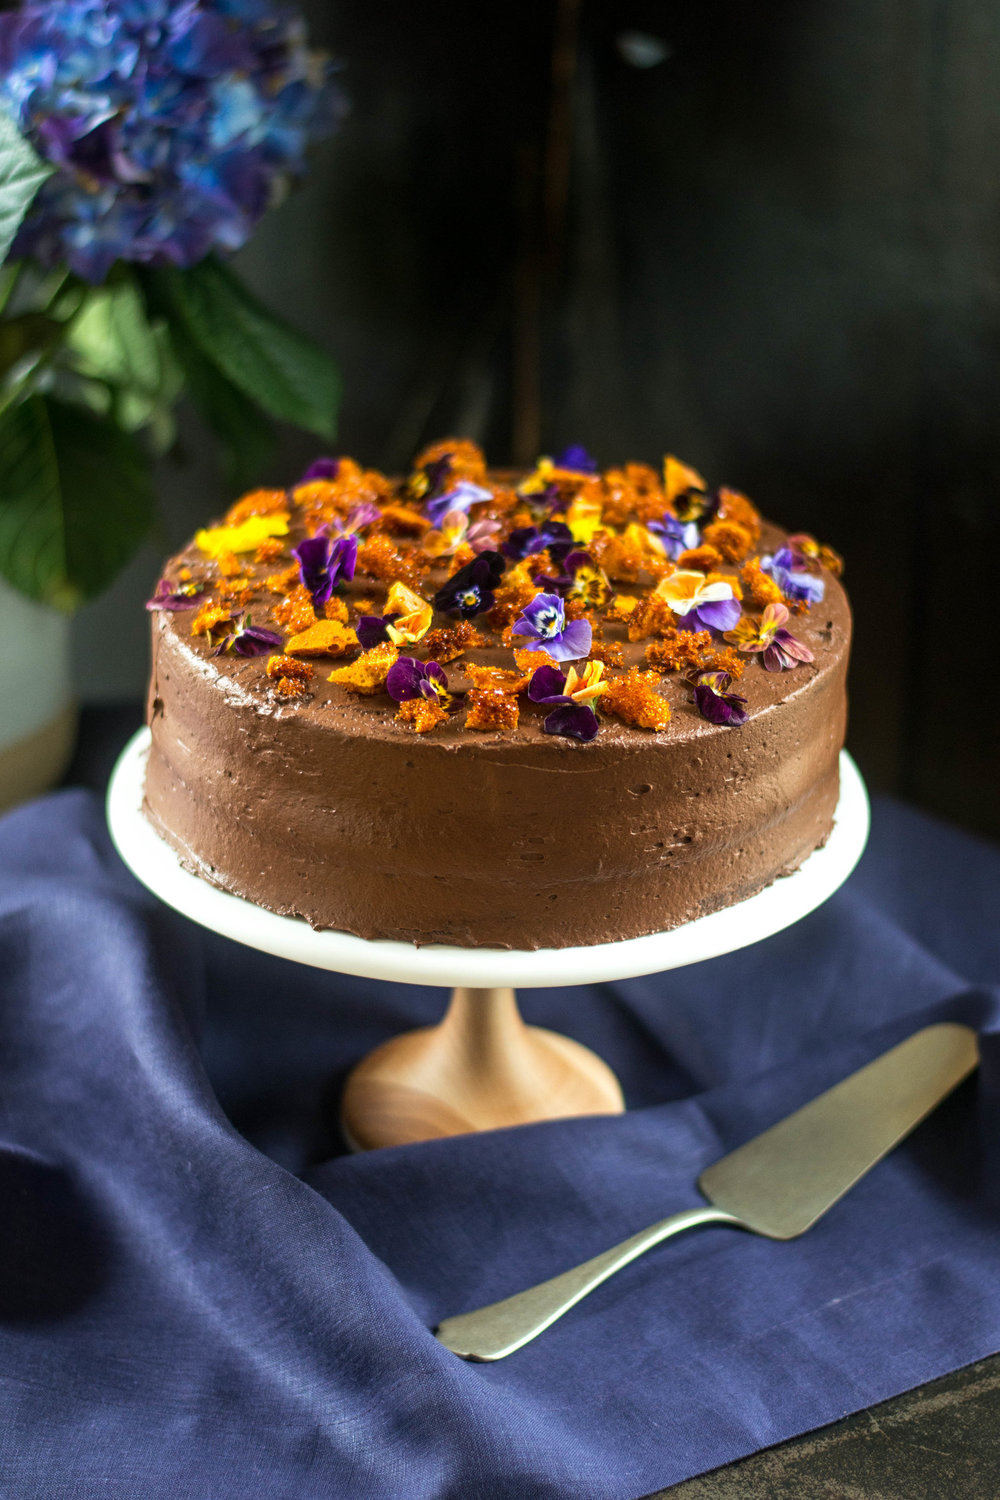 Honeycomb Chocolate Cake - What makes this gorgeous, rich chocolate cake so special? A bit of kitchen chemistry and the heart-shaped, scalloped leaves of edible viola flowers. Known as cinder toffee in England, fairy food in Wisconsin, yellow man in Ireland, and hokey pokey in New Zealand, honeycomb candy is an easy-to-make treat with interesting texture caused by carbon dioxide bubbles getting trapped when baking soda (sodium bicarbonate) is added to hot syrup. Violas begin popping up in early spring and add a charming and colorful bloom to the cake. Even chocolate lovers may be inclined to worry that this cake is just to pretty to cut. After the first crunchy, coffee nuanced bite of cake, however, it is hard to resist. Go ahead--dig in and have a second slice.